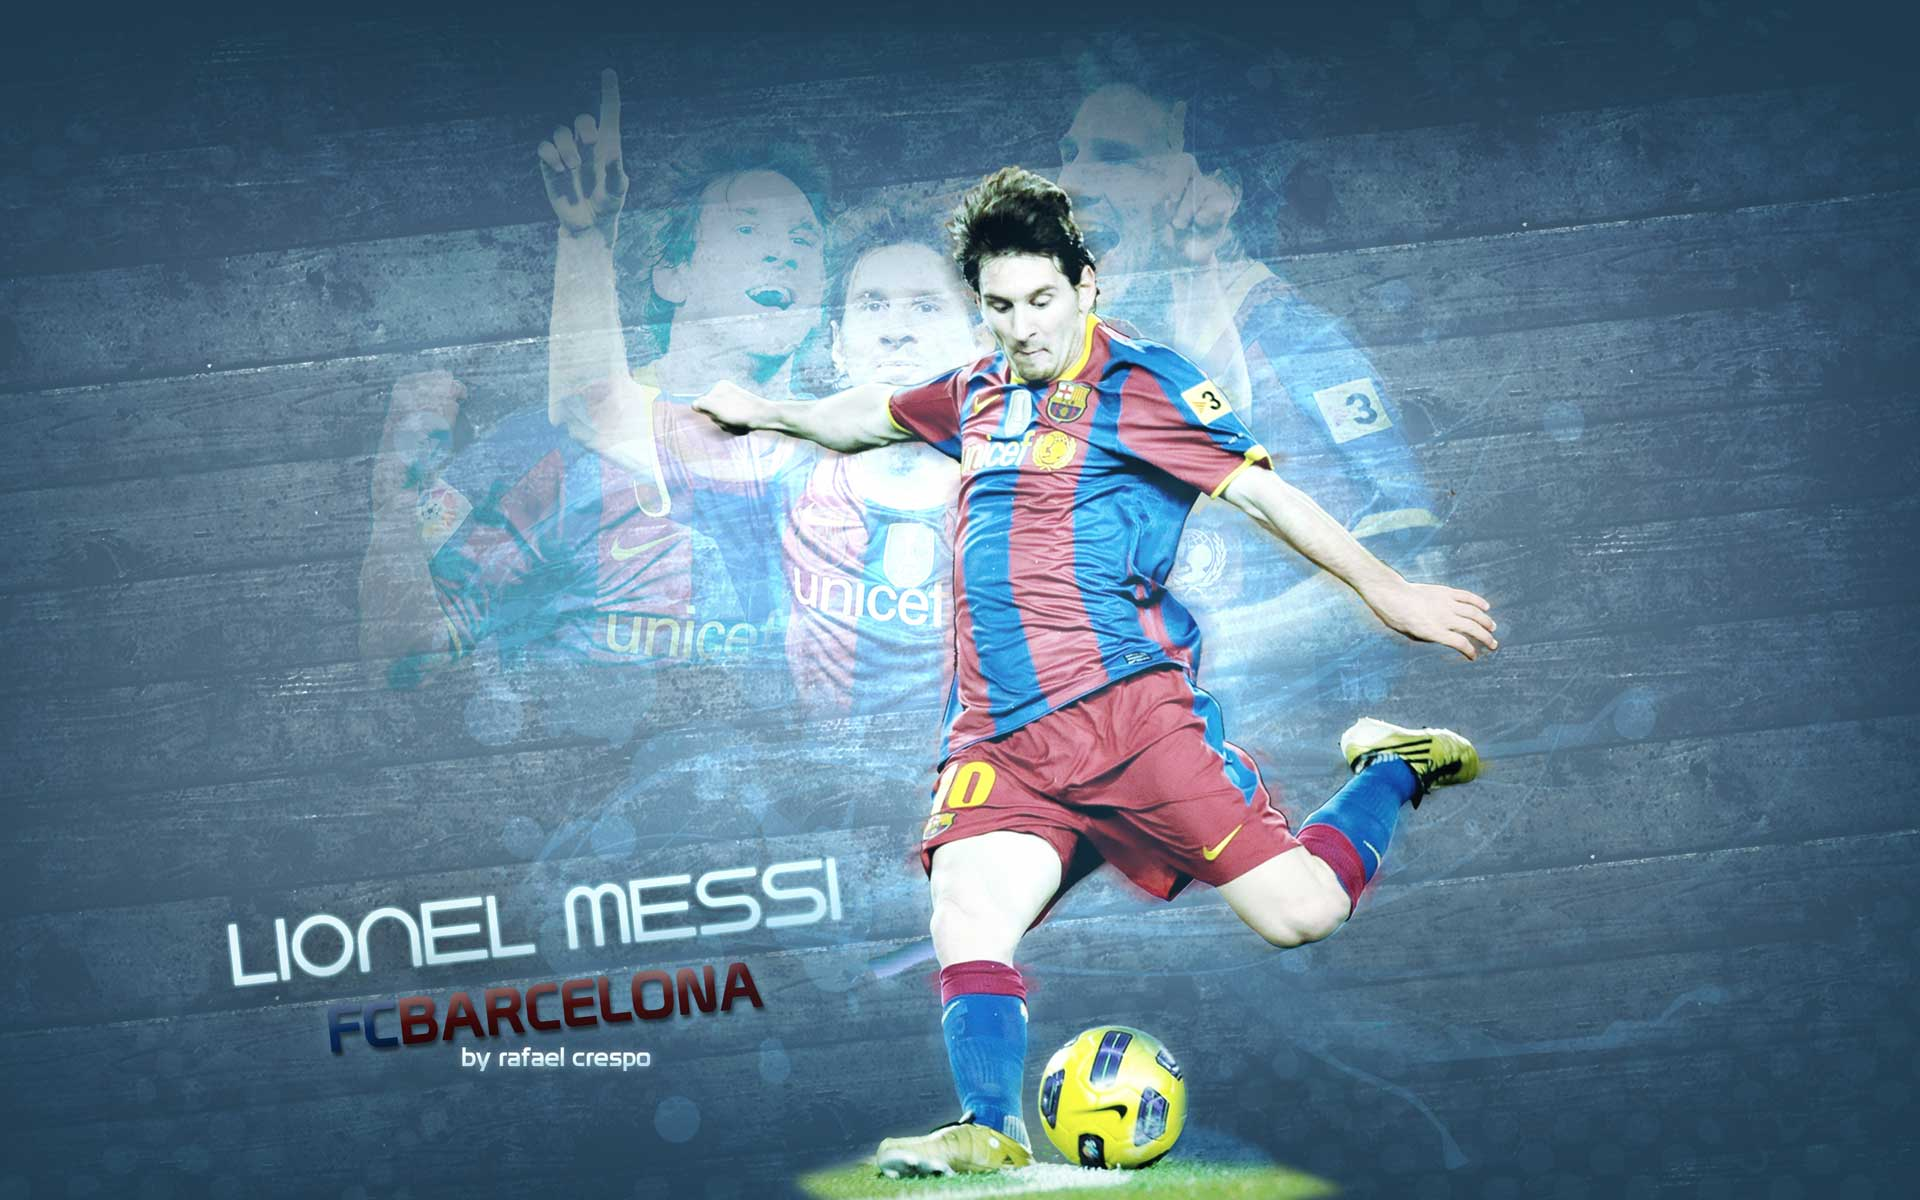 Lionel Messi Wallpapers - Full HD wallpaper search - page 5